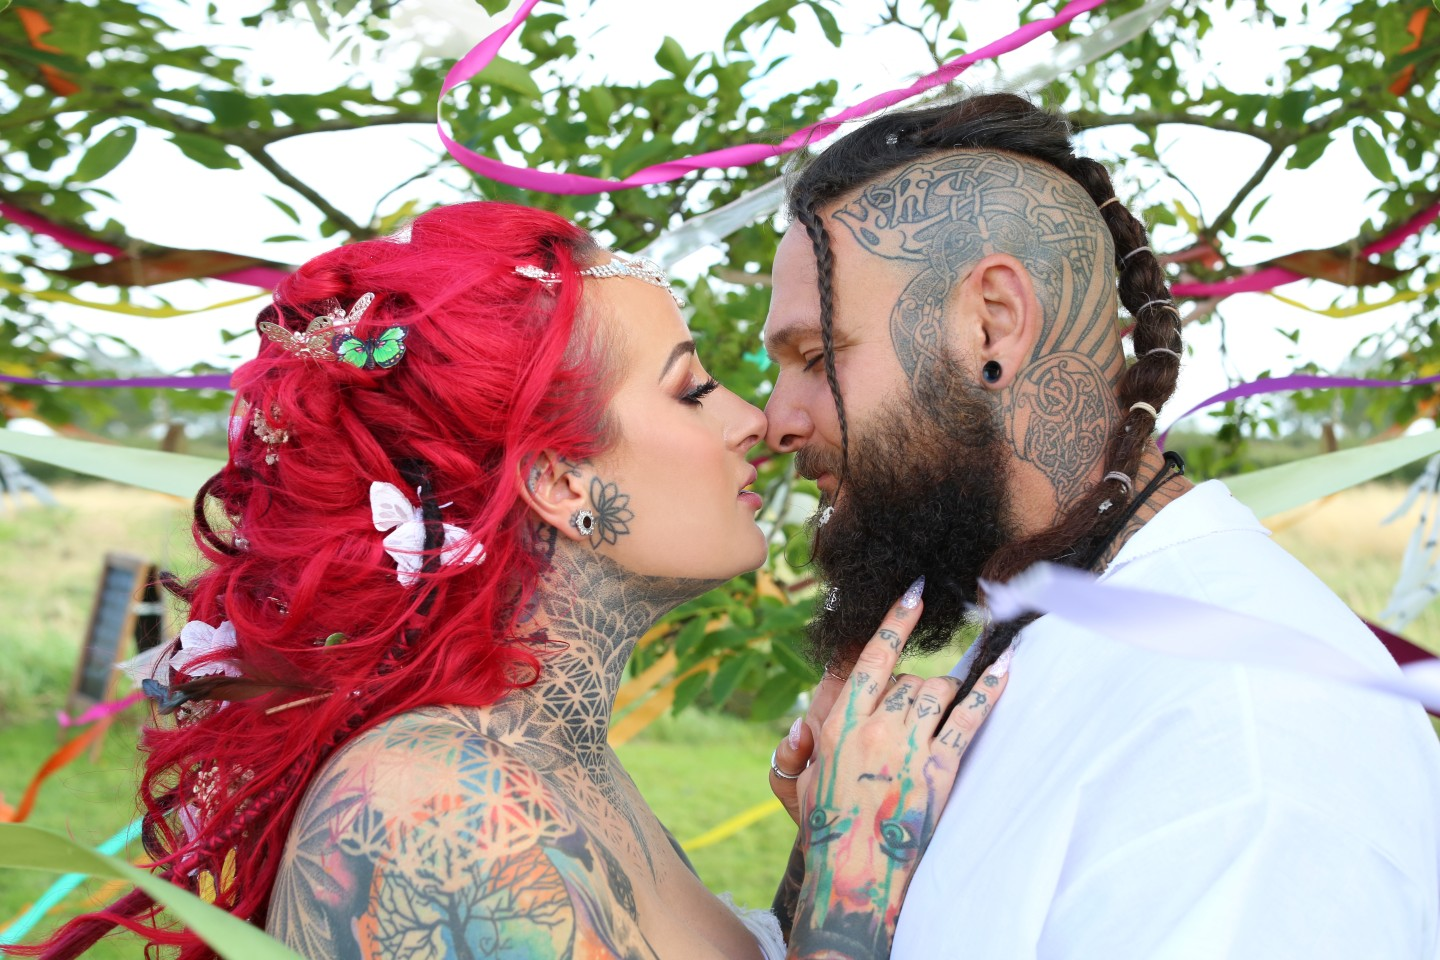 festival viking wedding - alternative wedding inspiration - unconventional wedding - alternative wedding blog - unique couple portrait